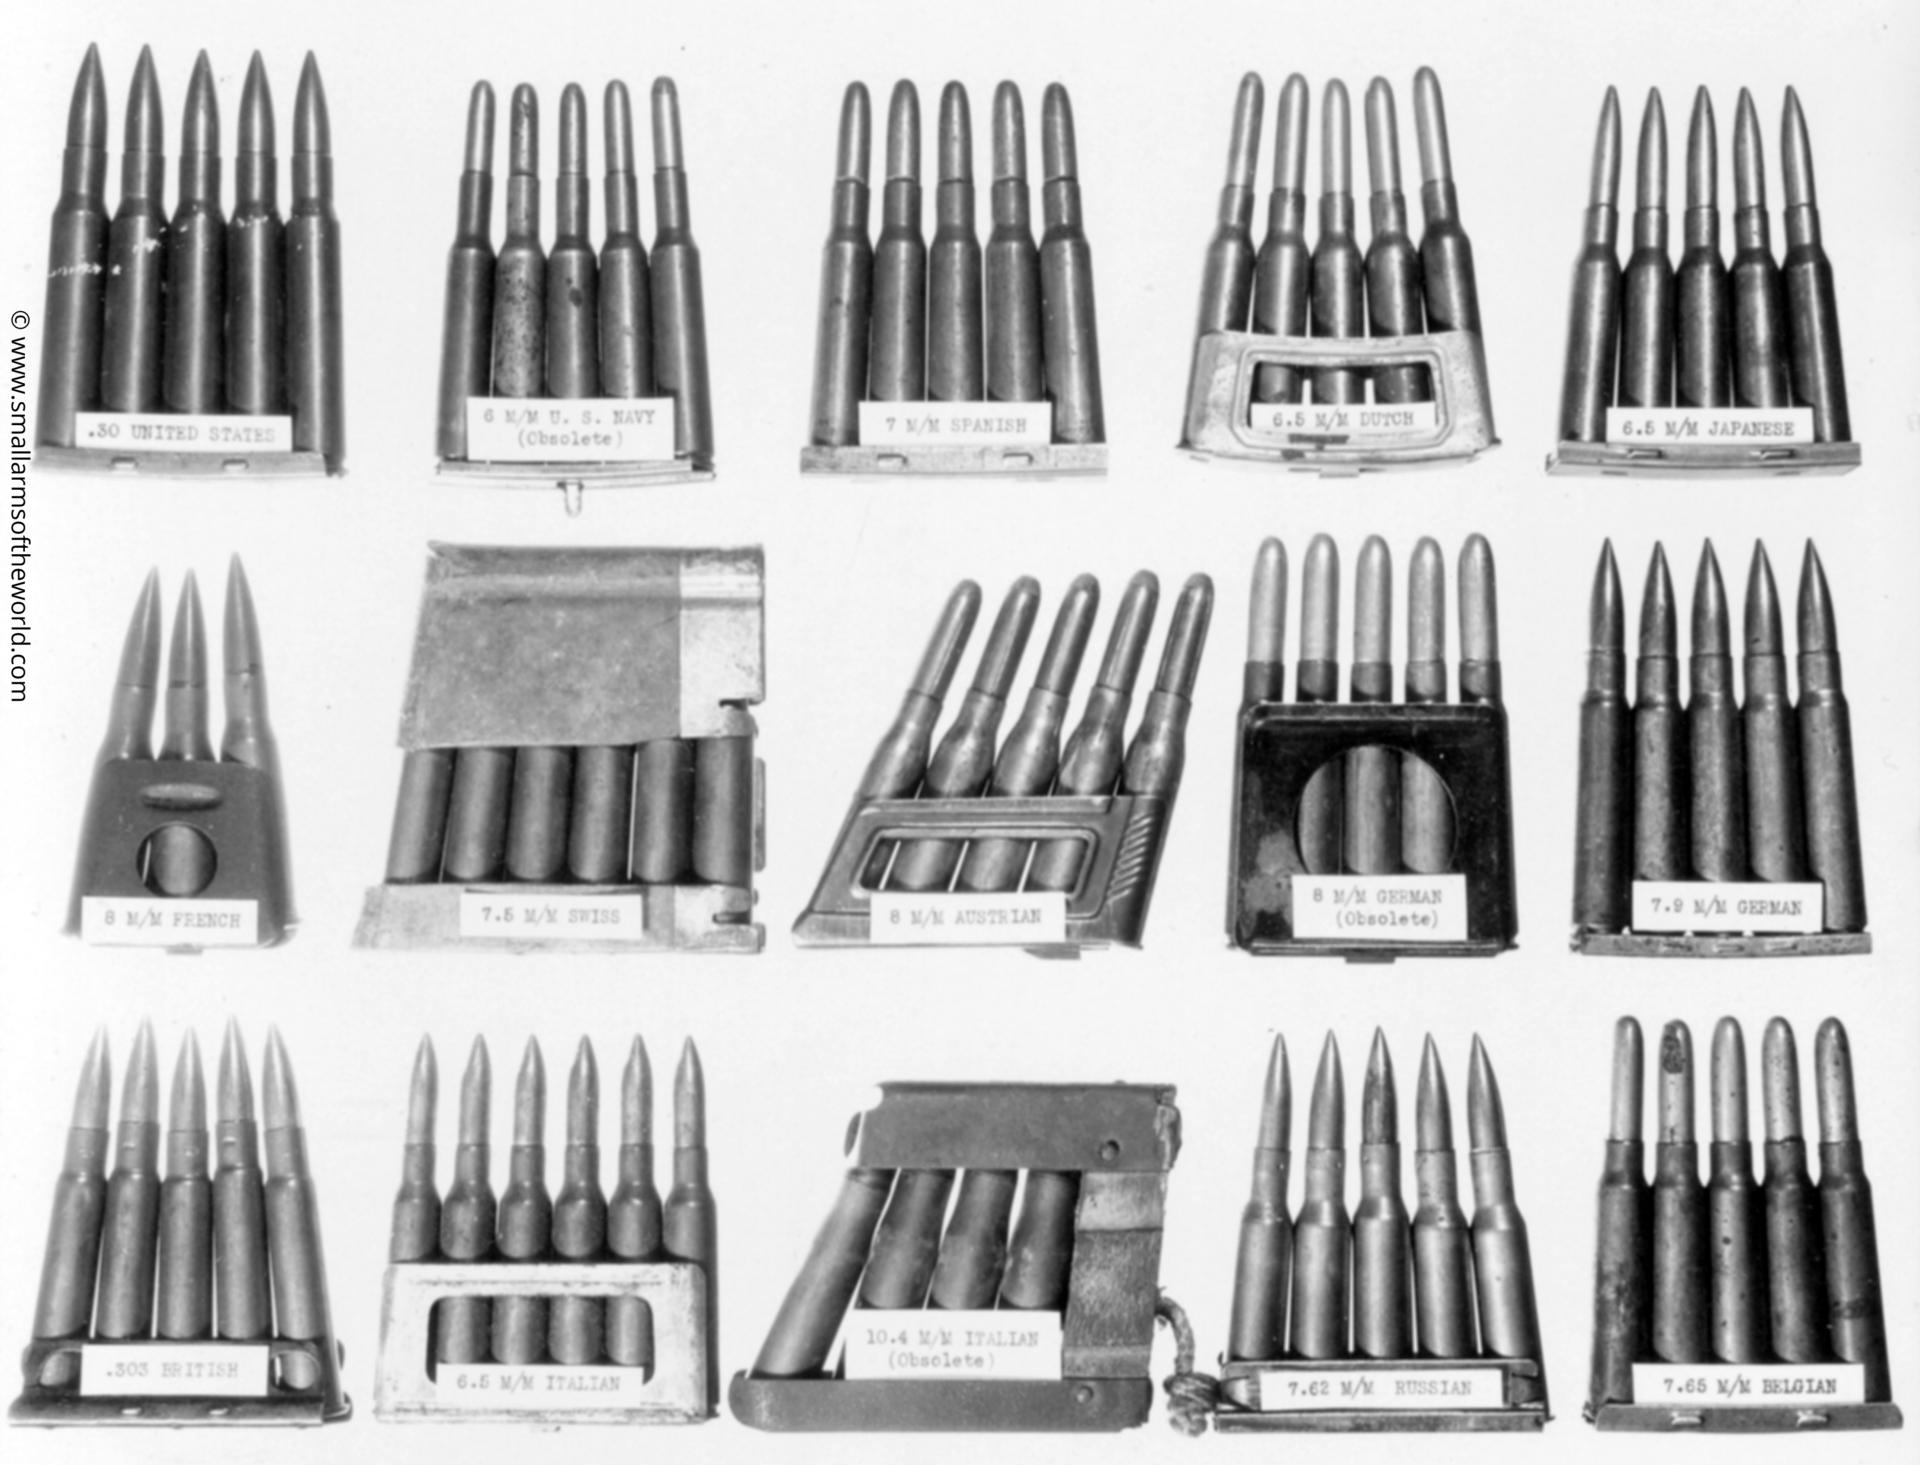 Photograph showing an assortment of ammunition types